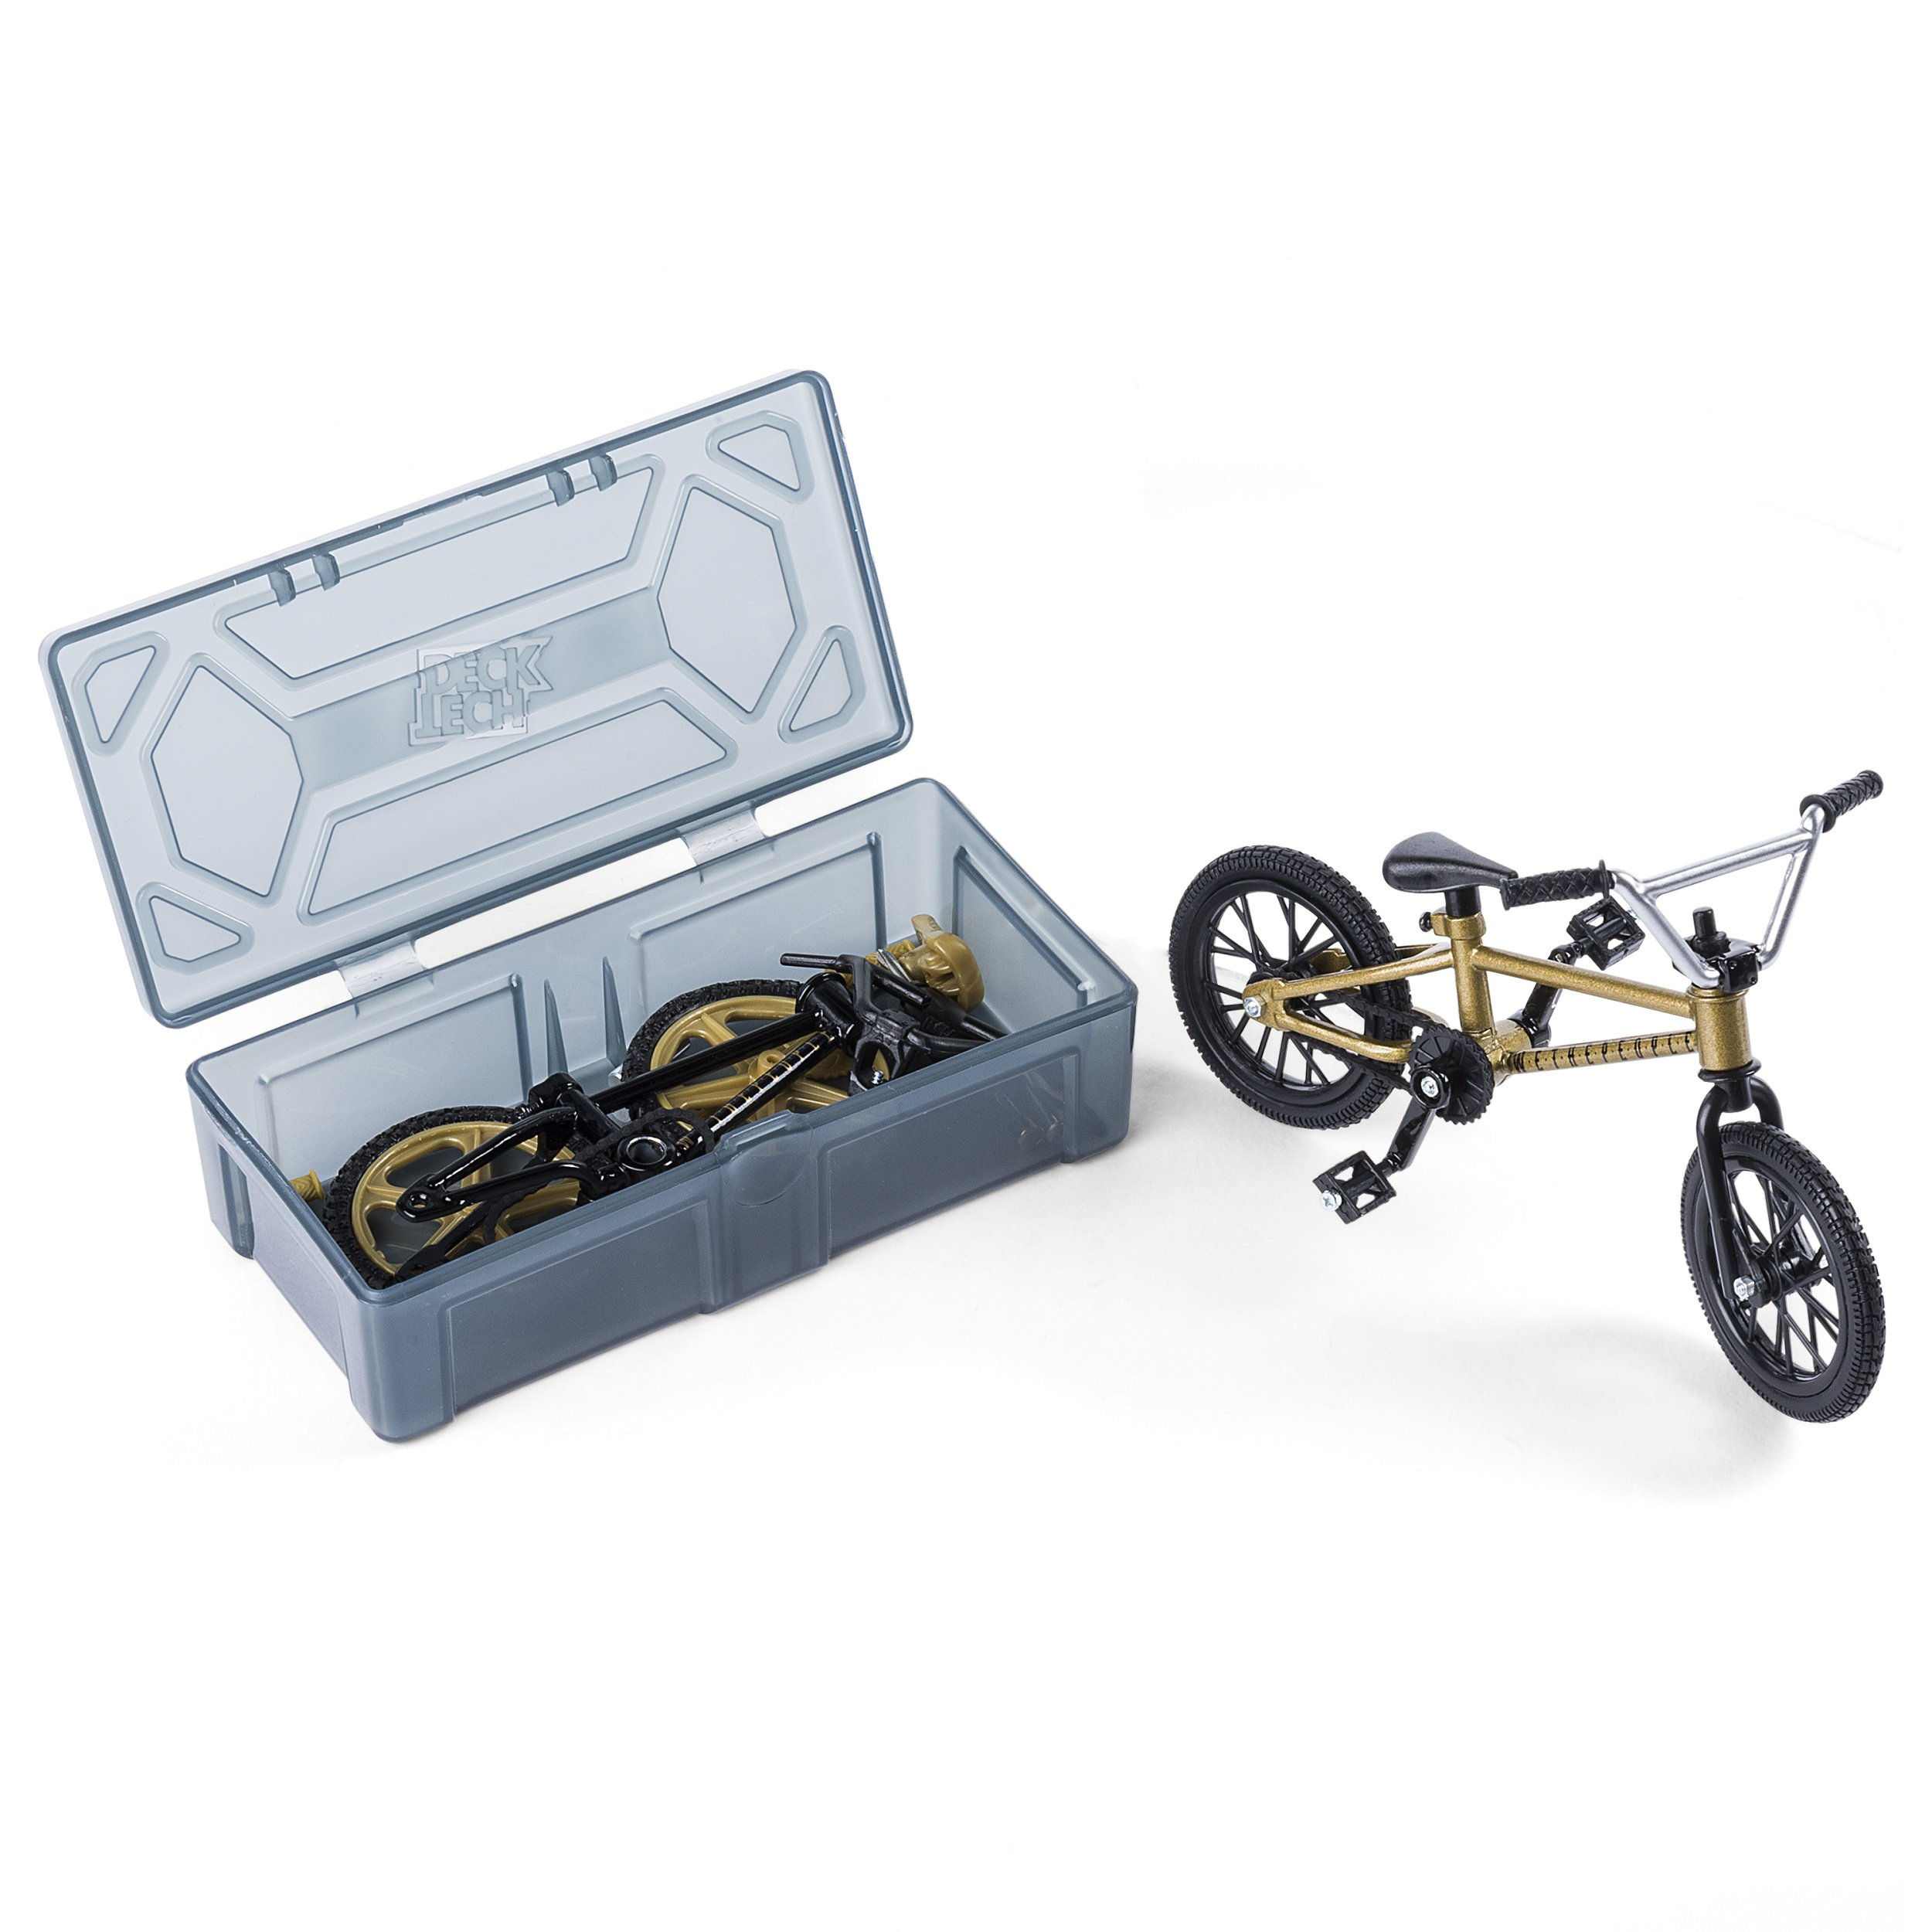 Tech Deck – BMX Bike Shop with Accessories and Storage Container – WeThePeople Bikes – Gold & Black by Tech Deck (Image #3)